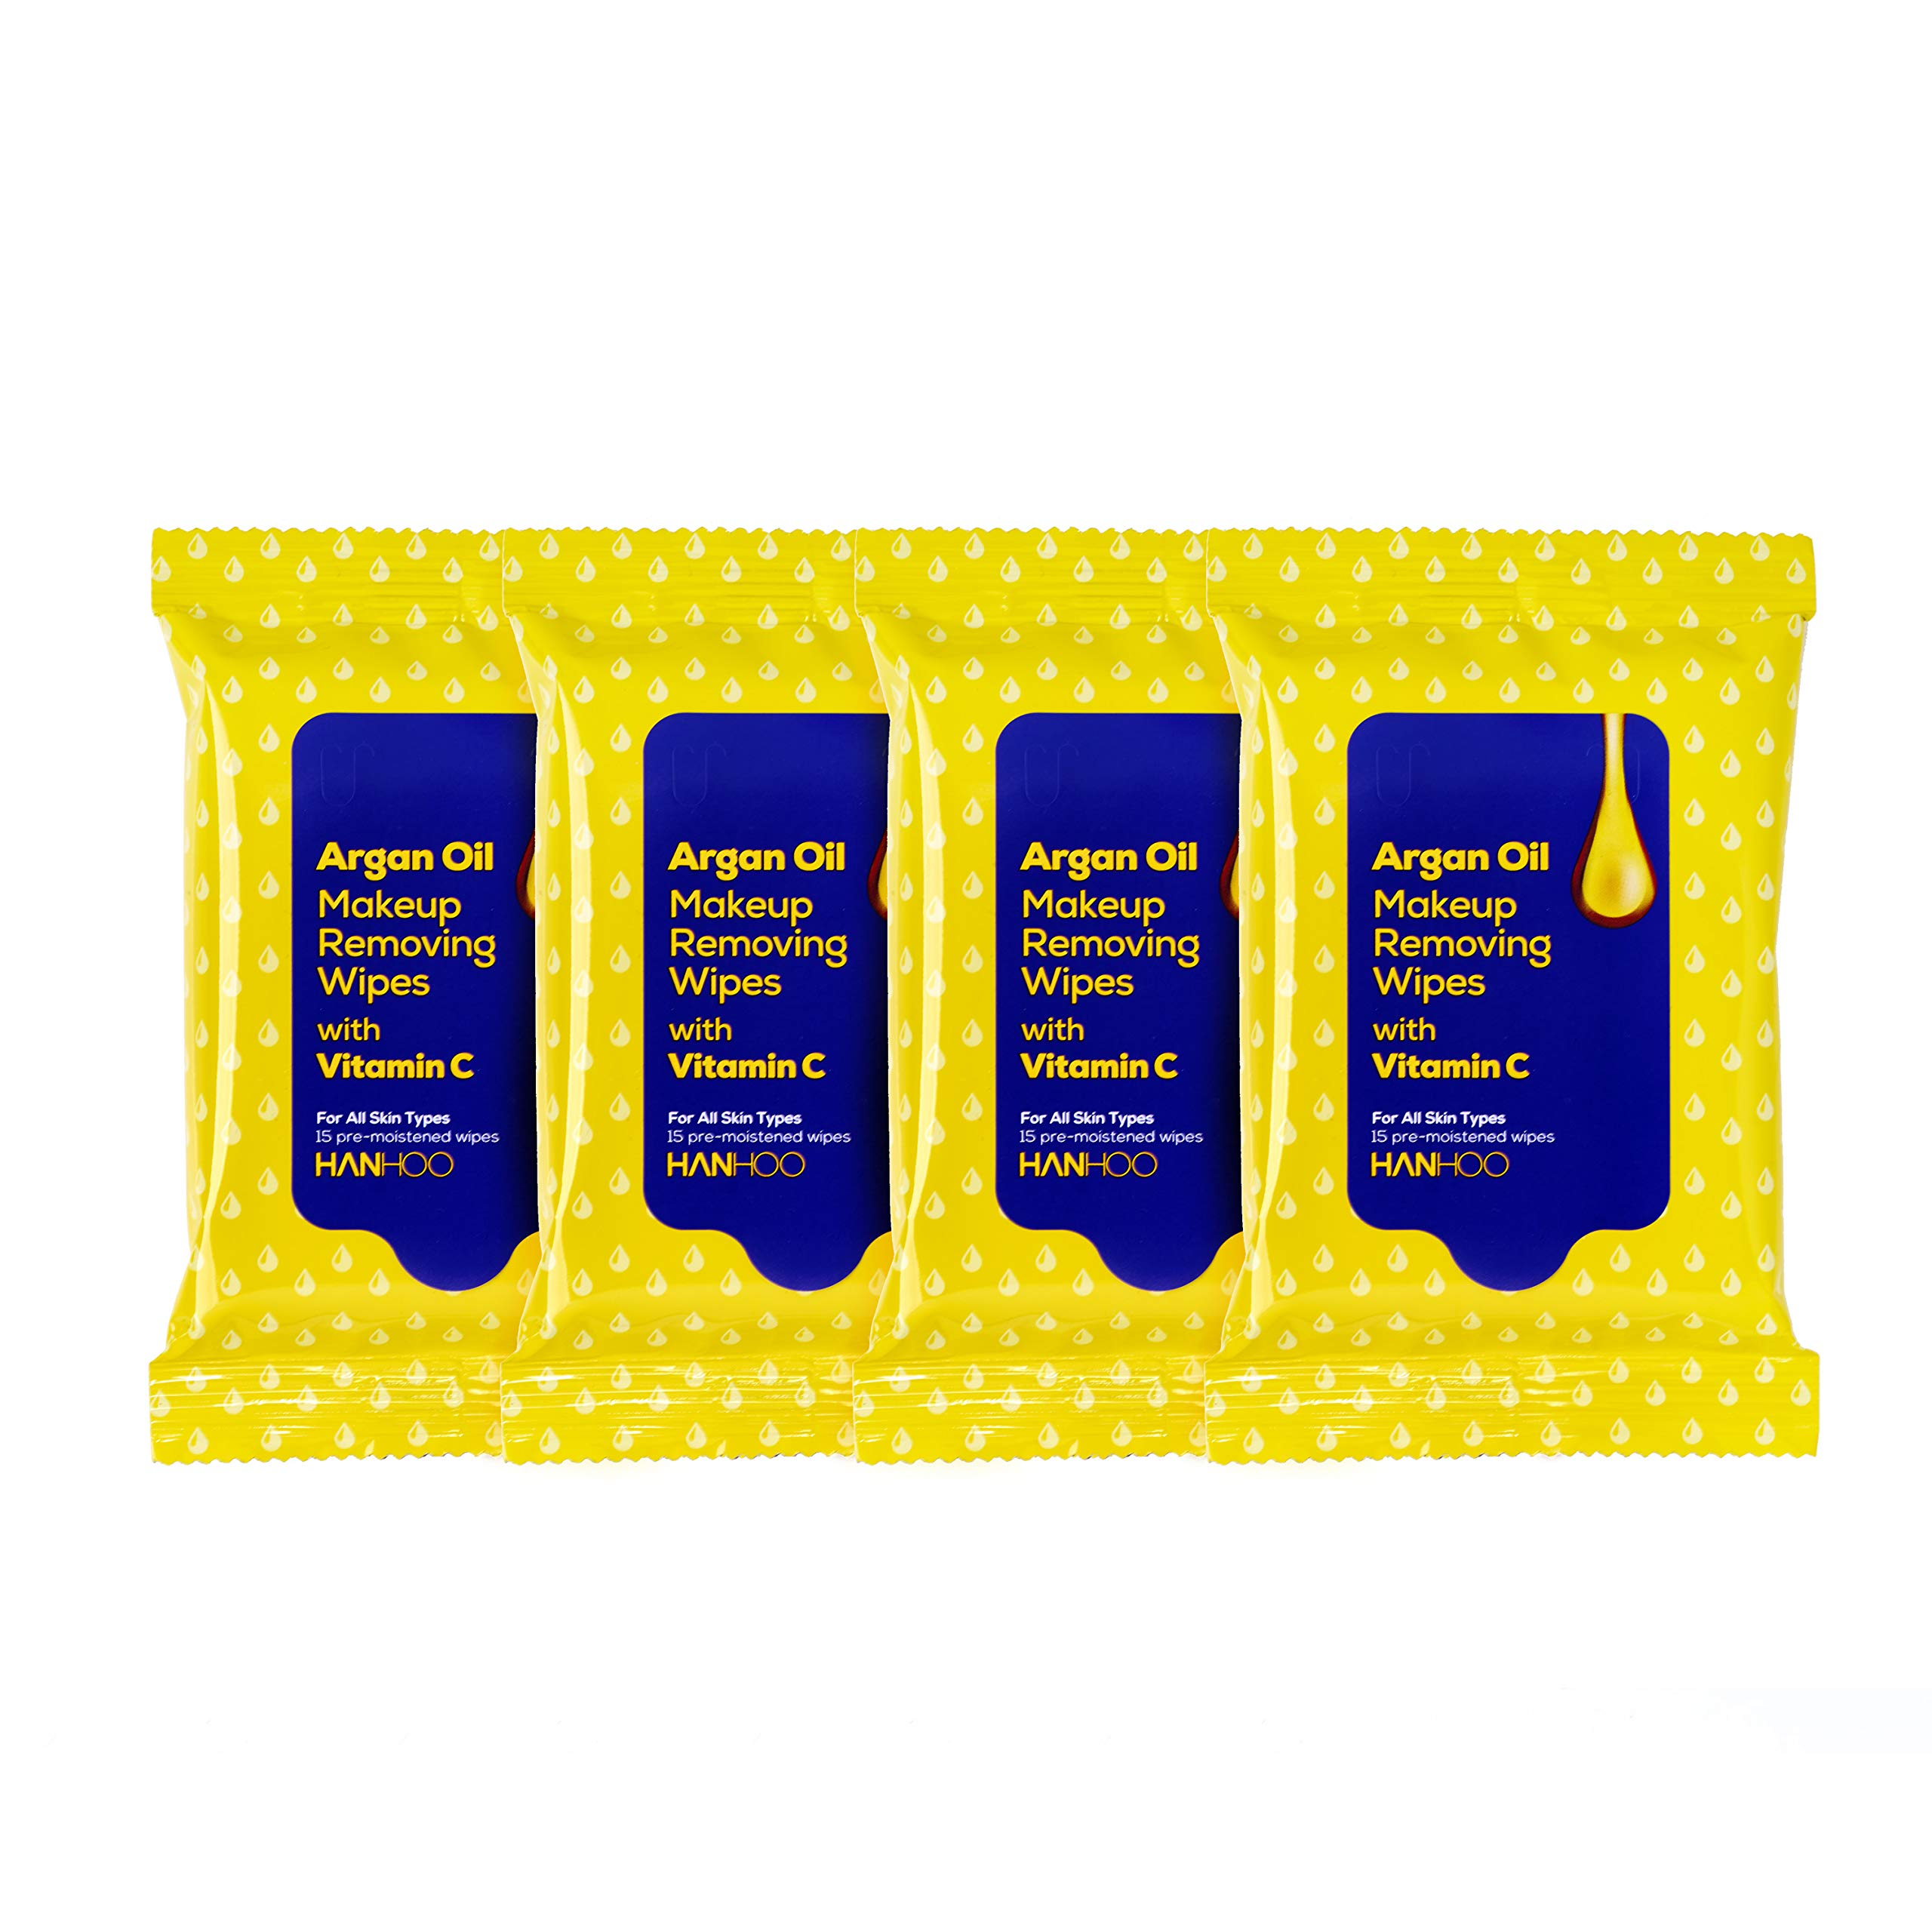 Hanhoo - Argan Oil Makeup Removing Wipes with Vitamin C | Moisturizing and Brightening Face Wash for All Skin Types (4 Pack - 15 wipes each)